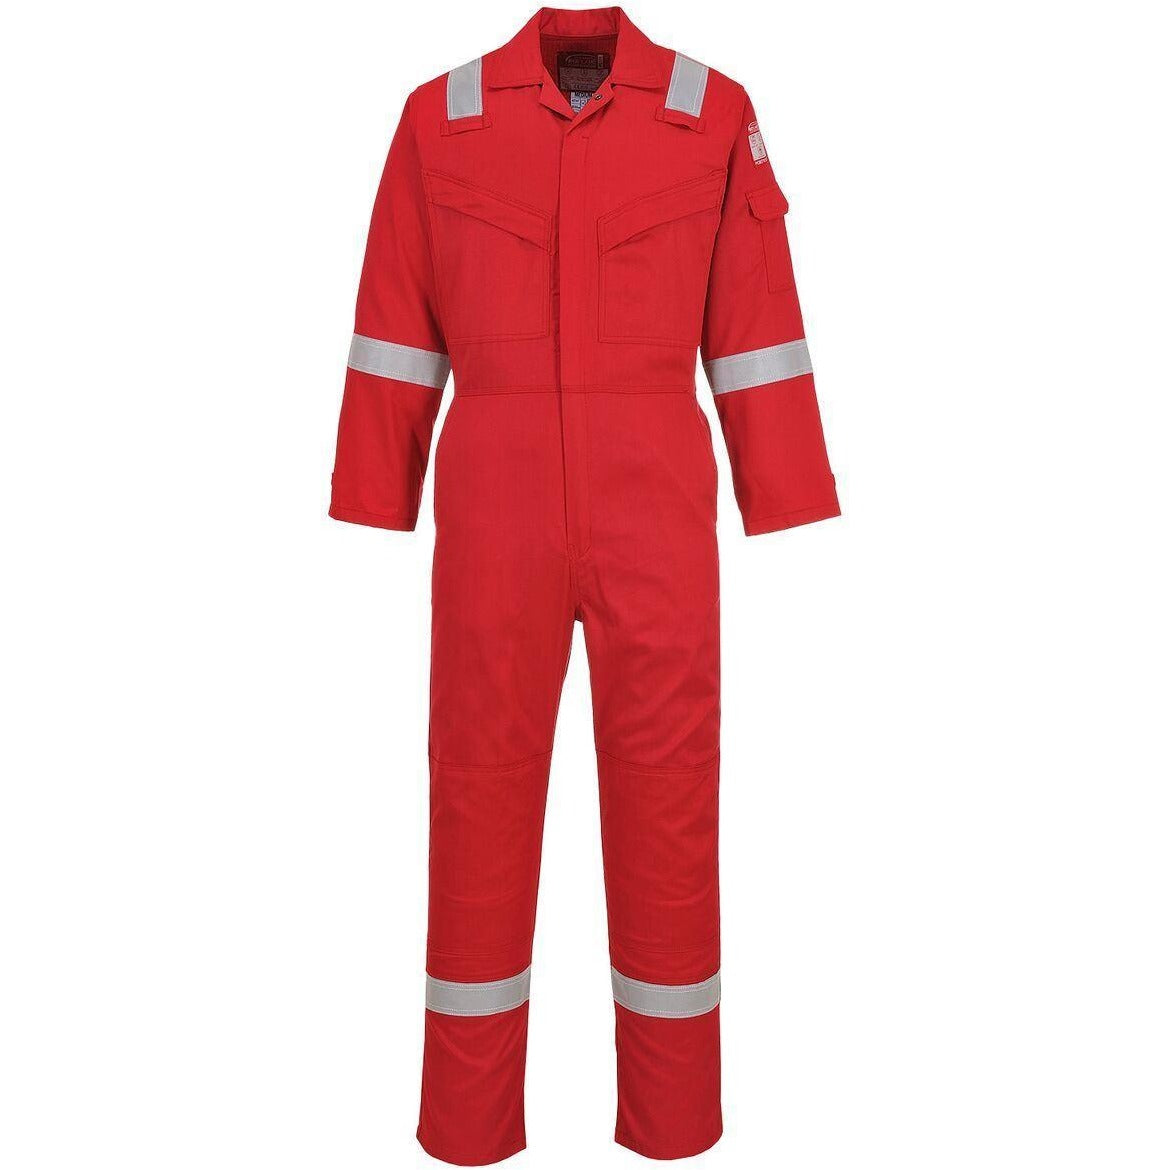 Portwest Flame Resistant Super Light Weight Anti-Static Coverall 210g FR21